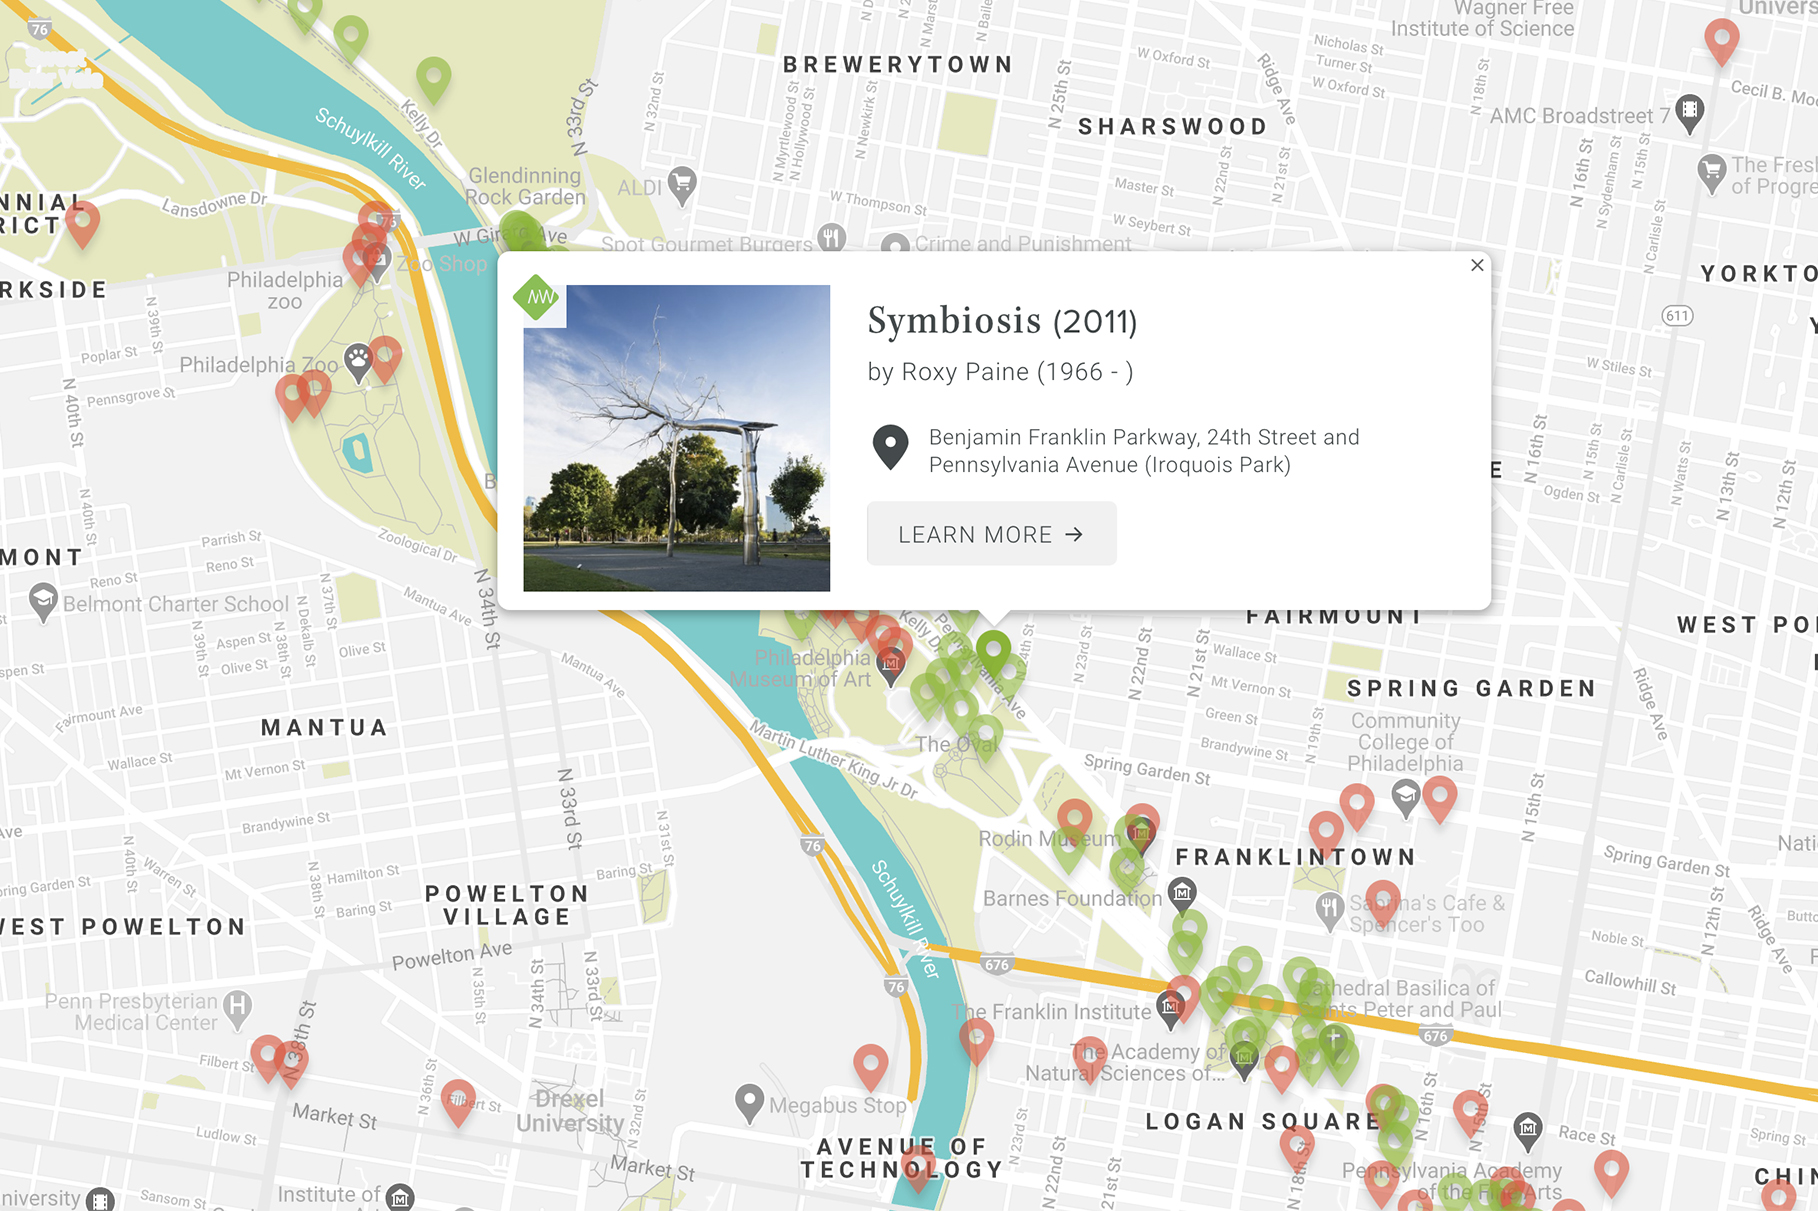 Association for Public Art's interactive public art map for Philadelphia - screenshot